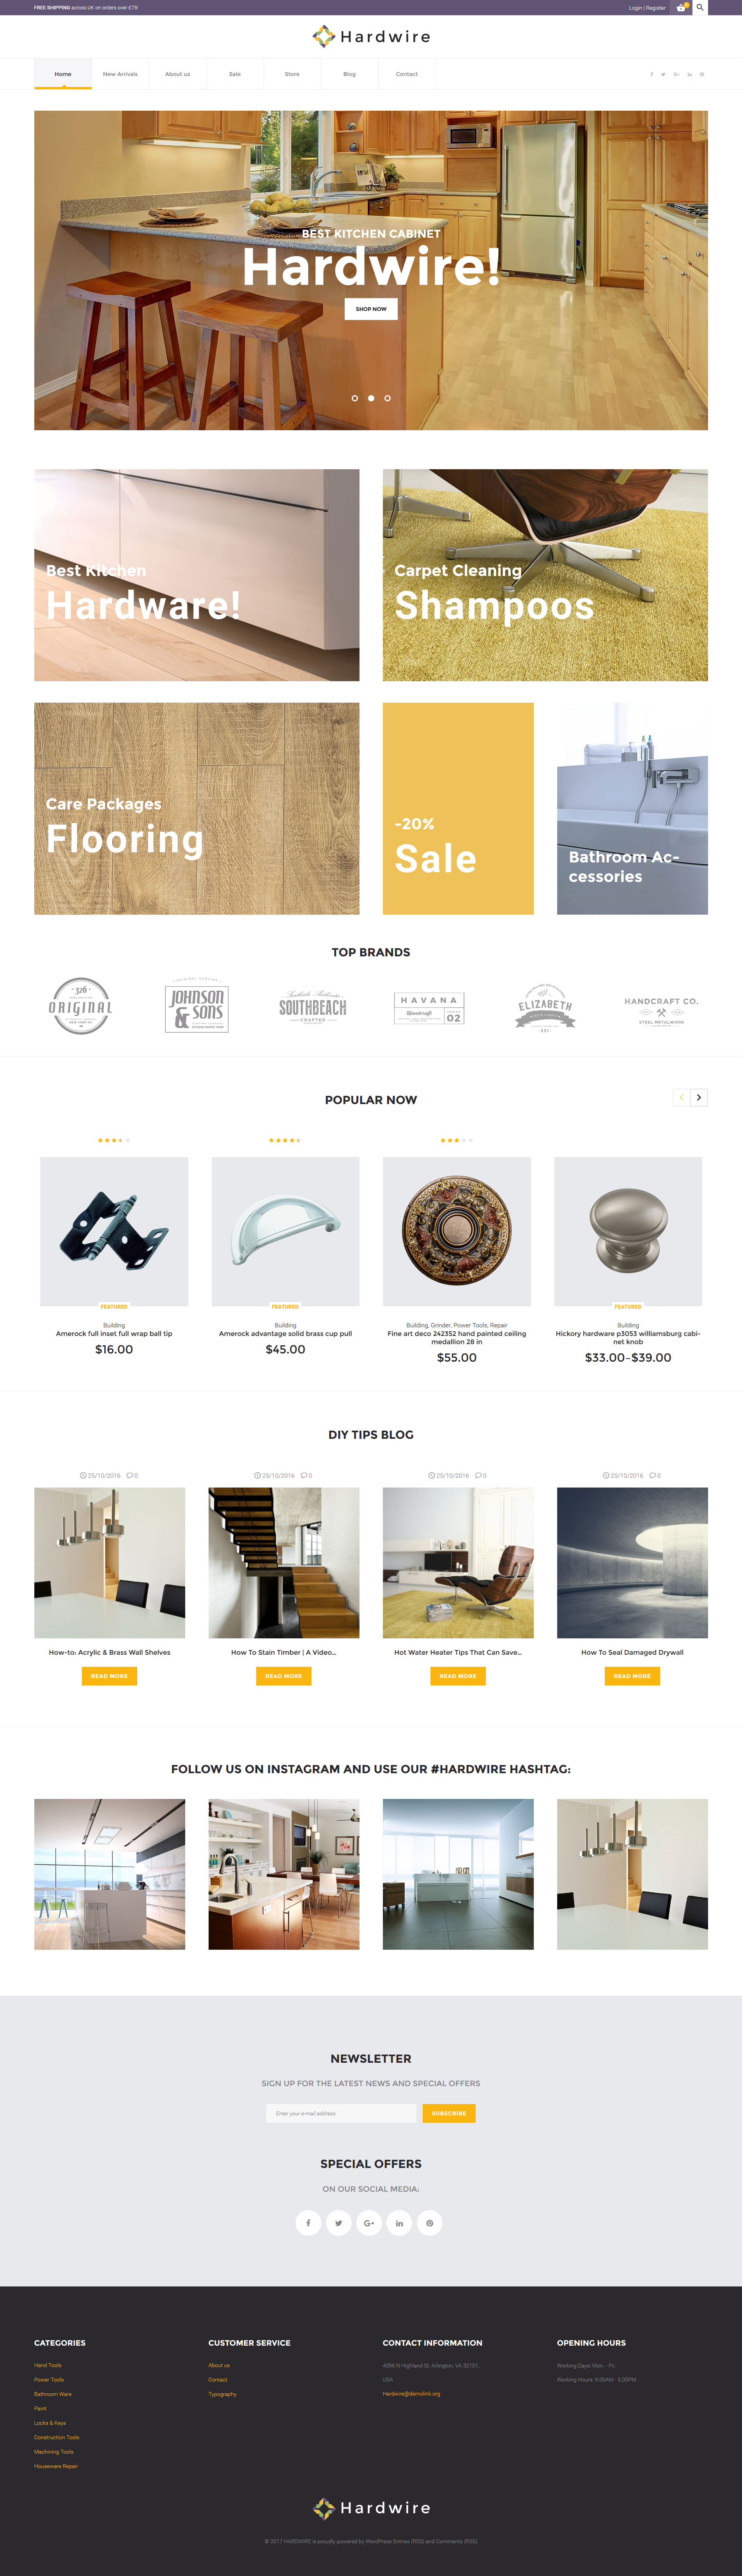 Hardwire - Household Hardware Store Responsive WooCommerce Theme